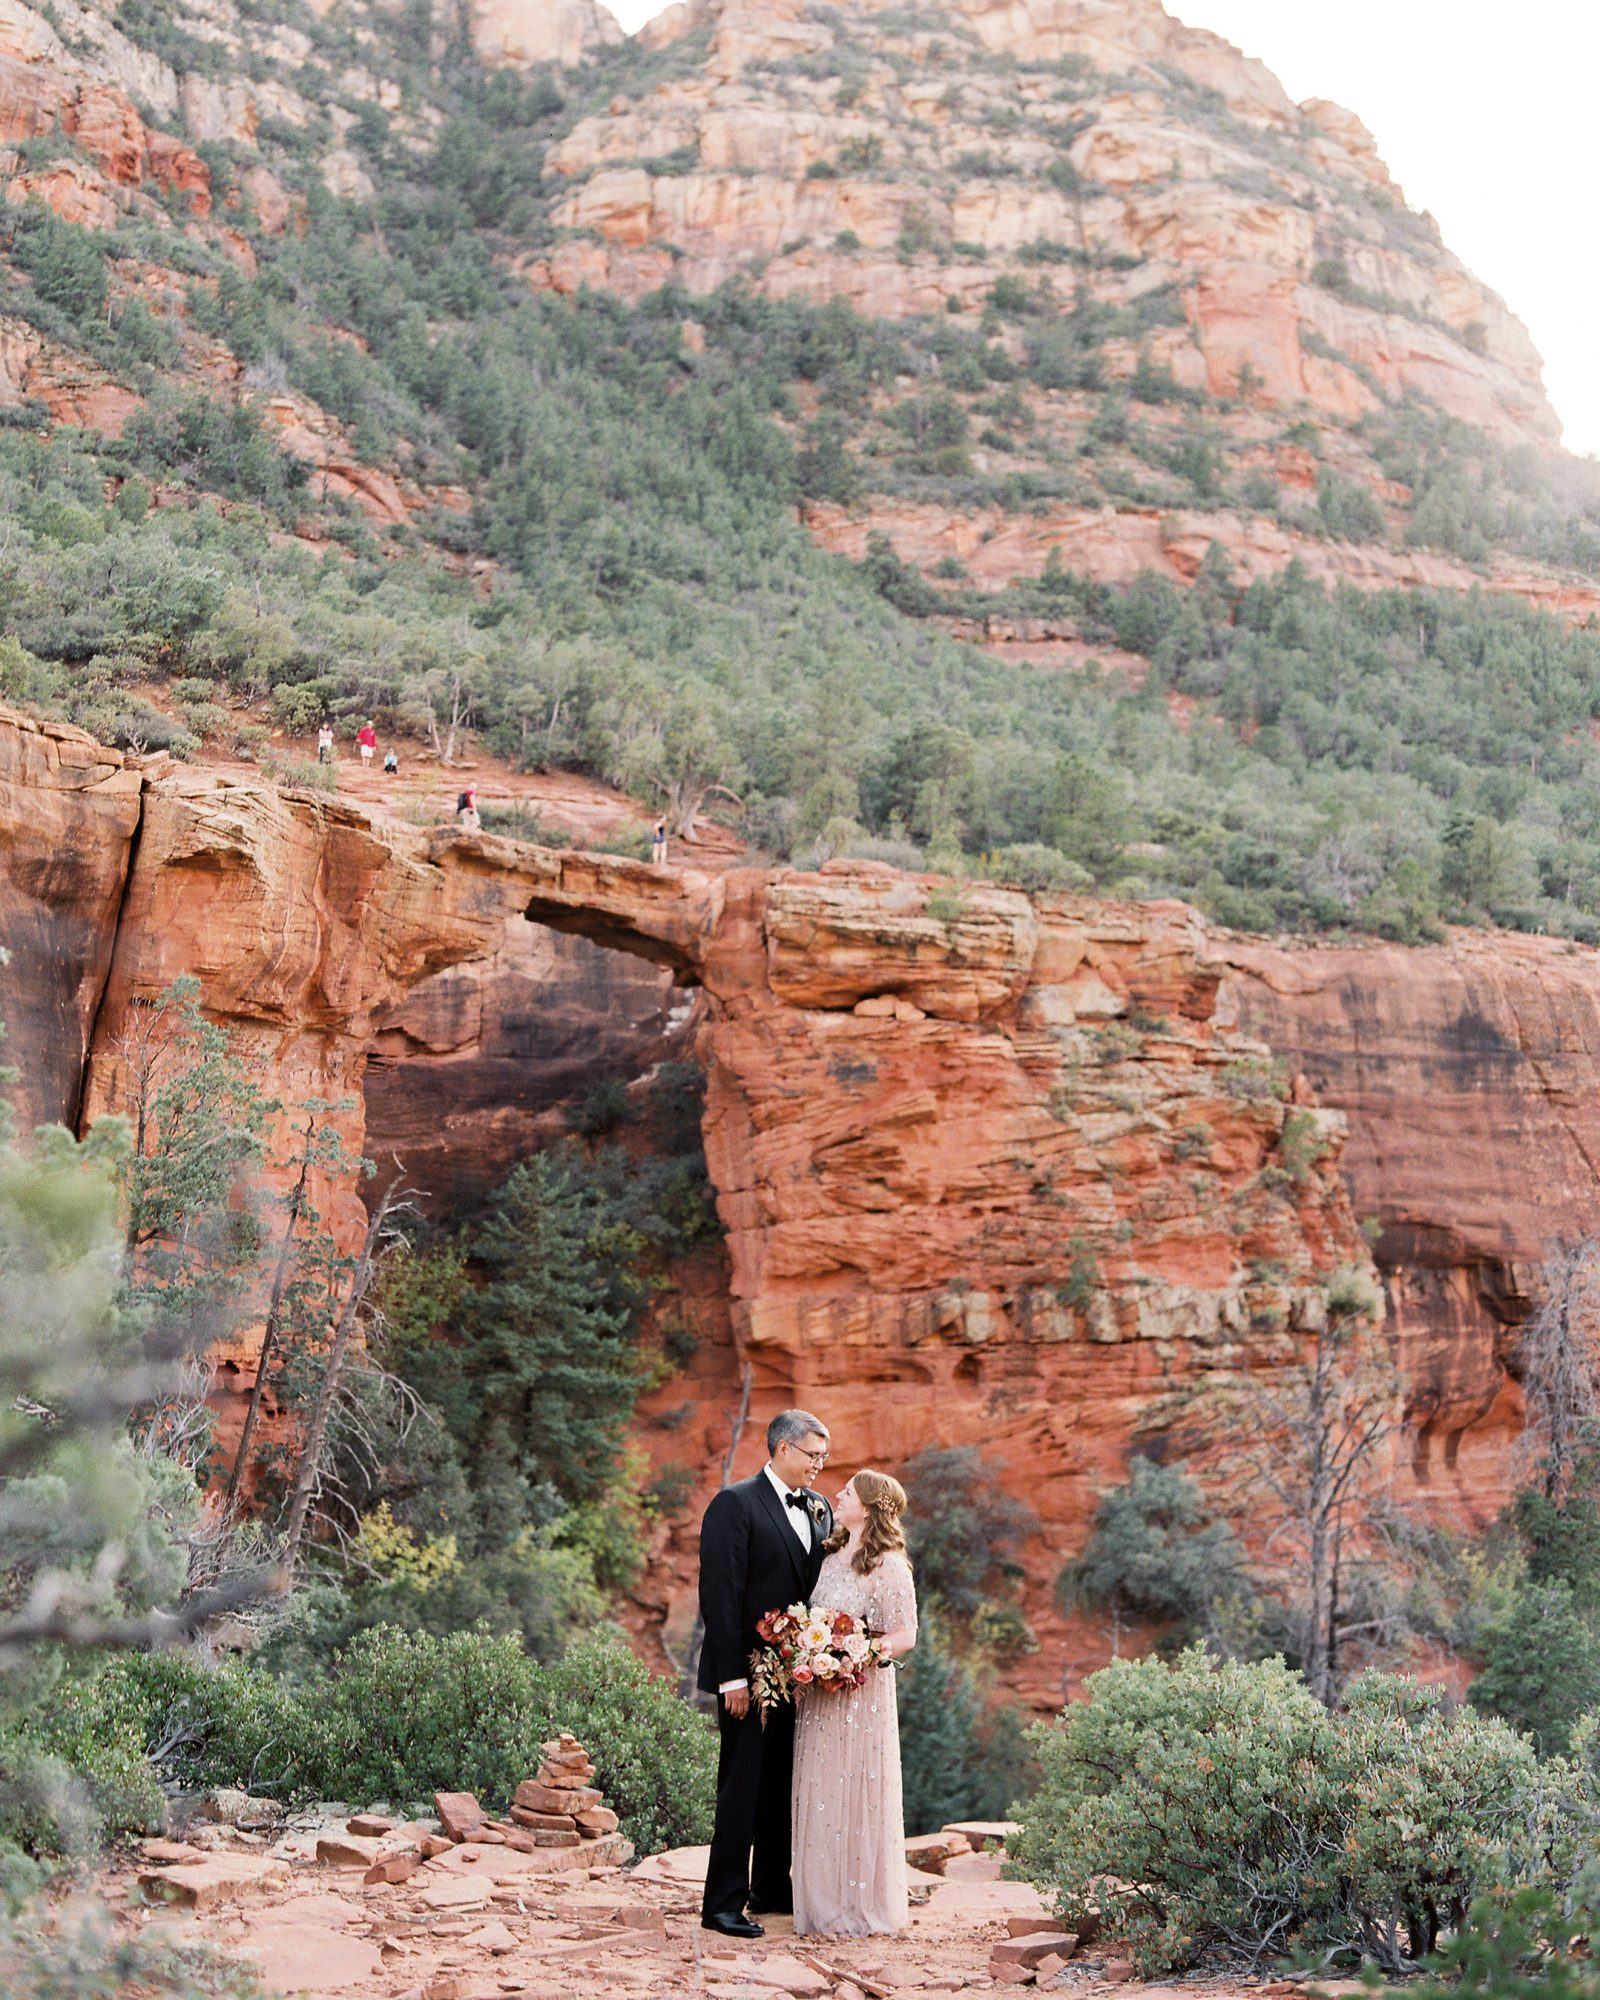 stefanie terrel wedding couple red rocks